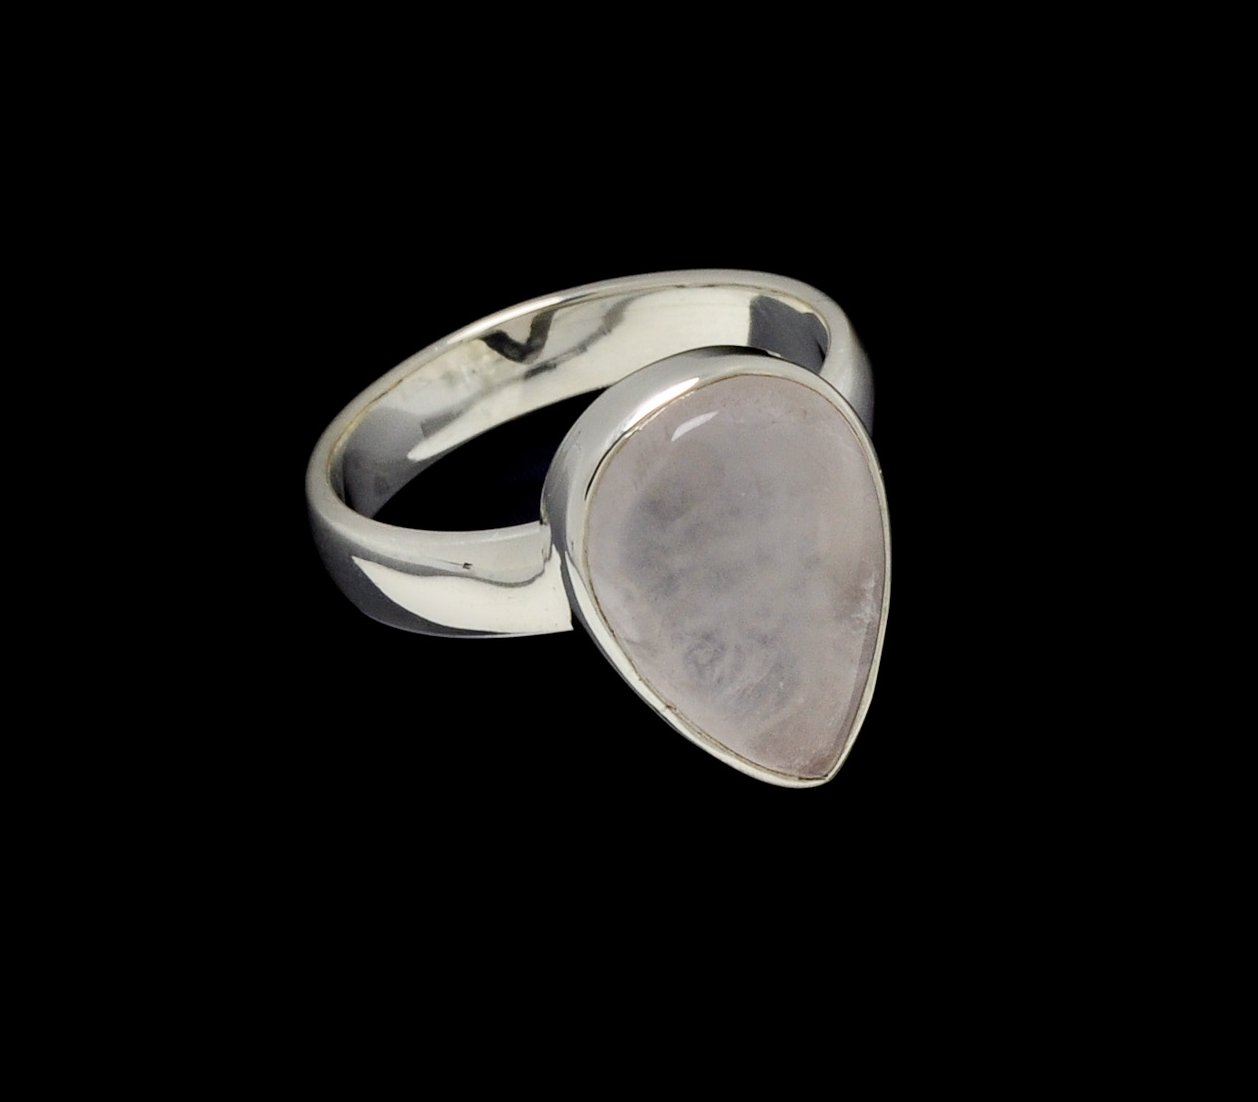 Rose Quartz Ring 15mm x 10mm Pear Cut